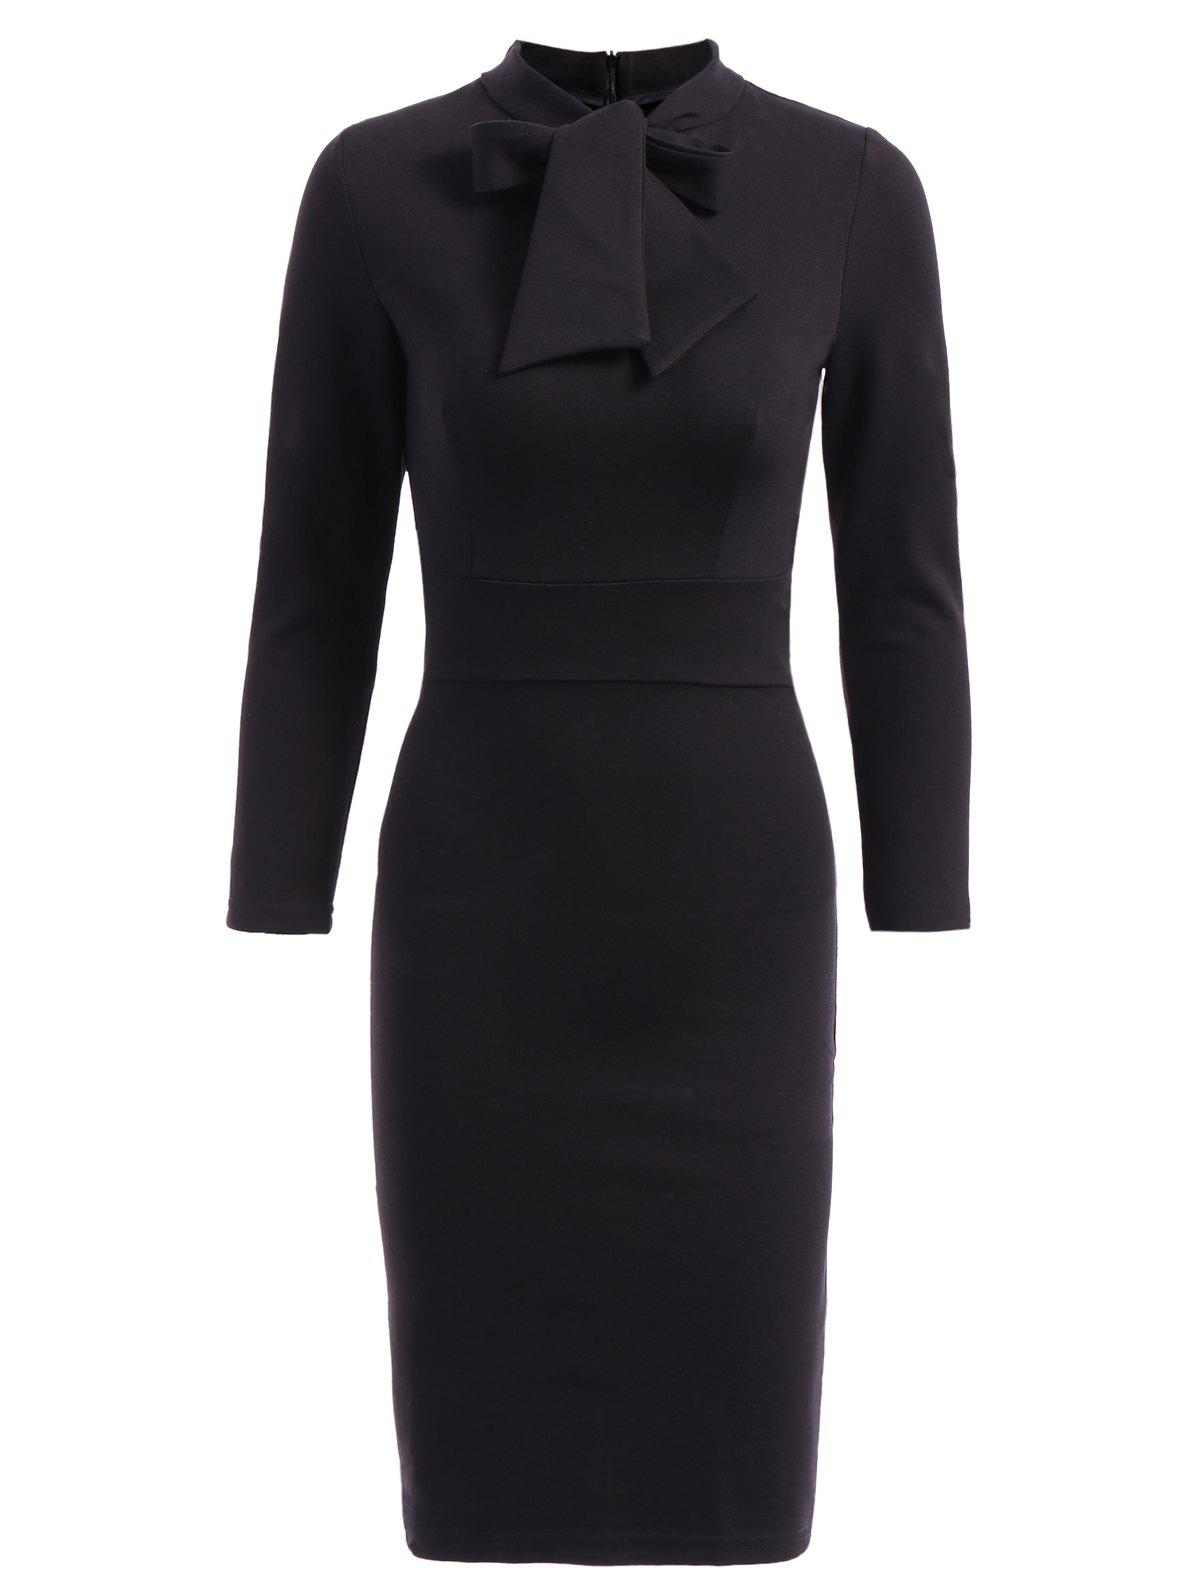 OL StylePure Color  3/4 Sleeve Bodycon Dress For Women - BLACK S